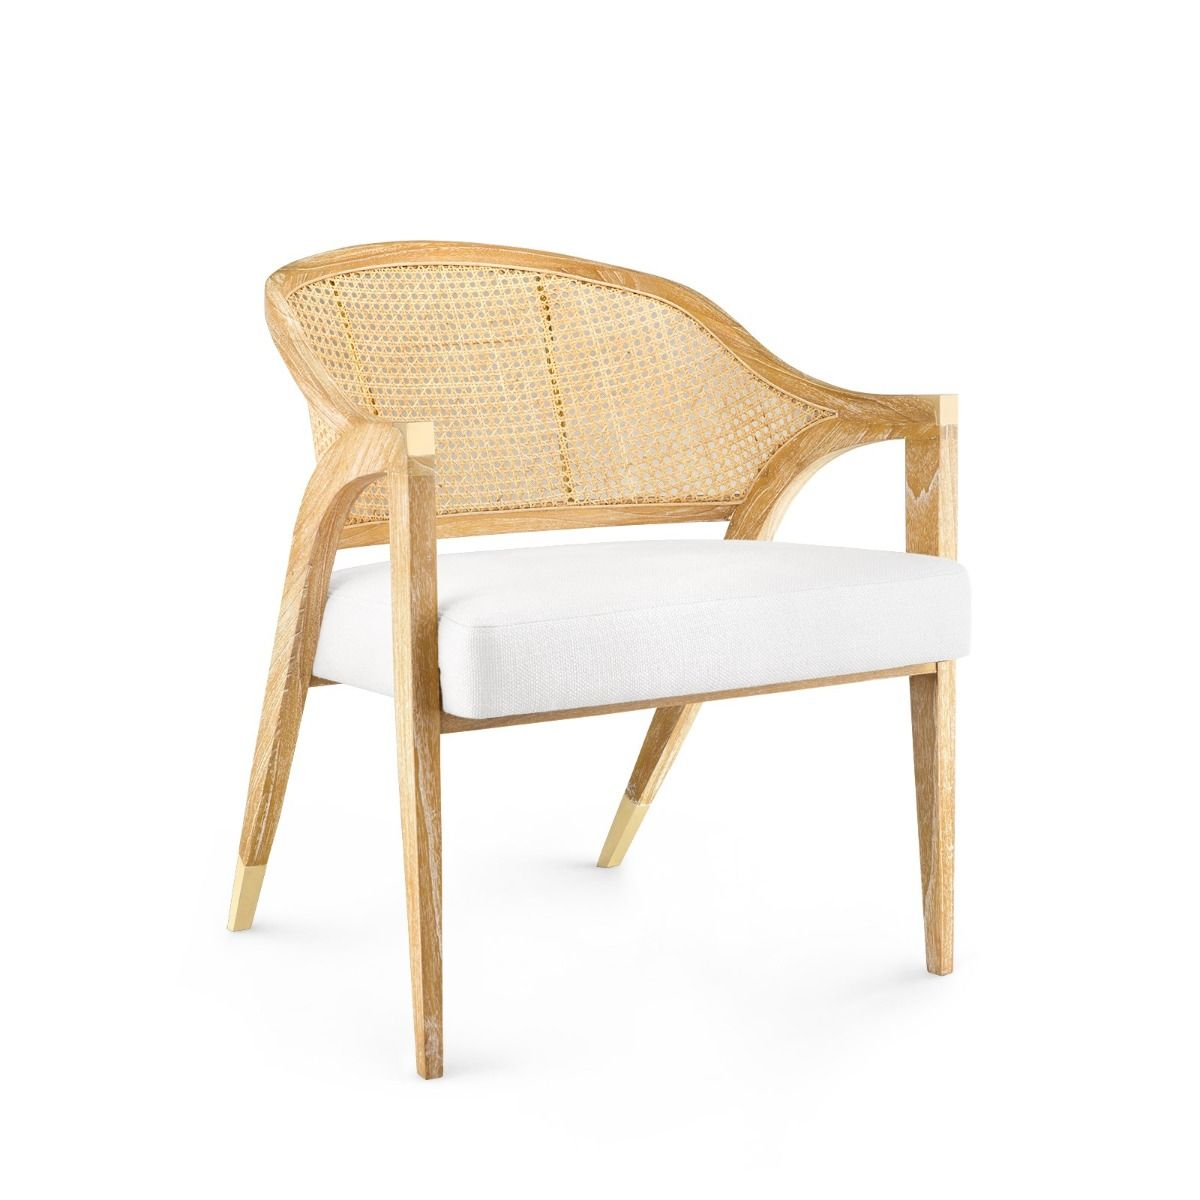 Bungalow 5 - EDWARD LOUNGE CHAIR, NATURAL